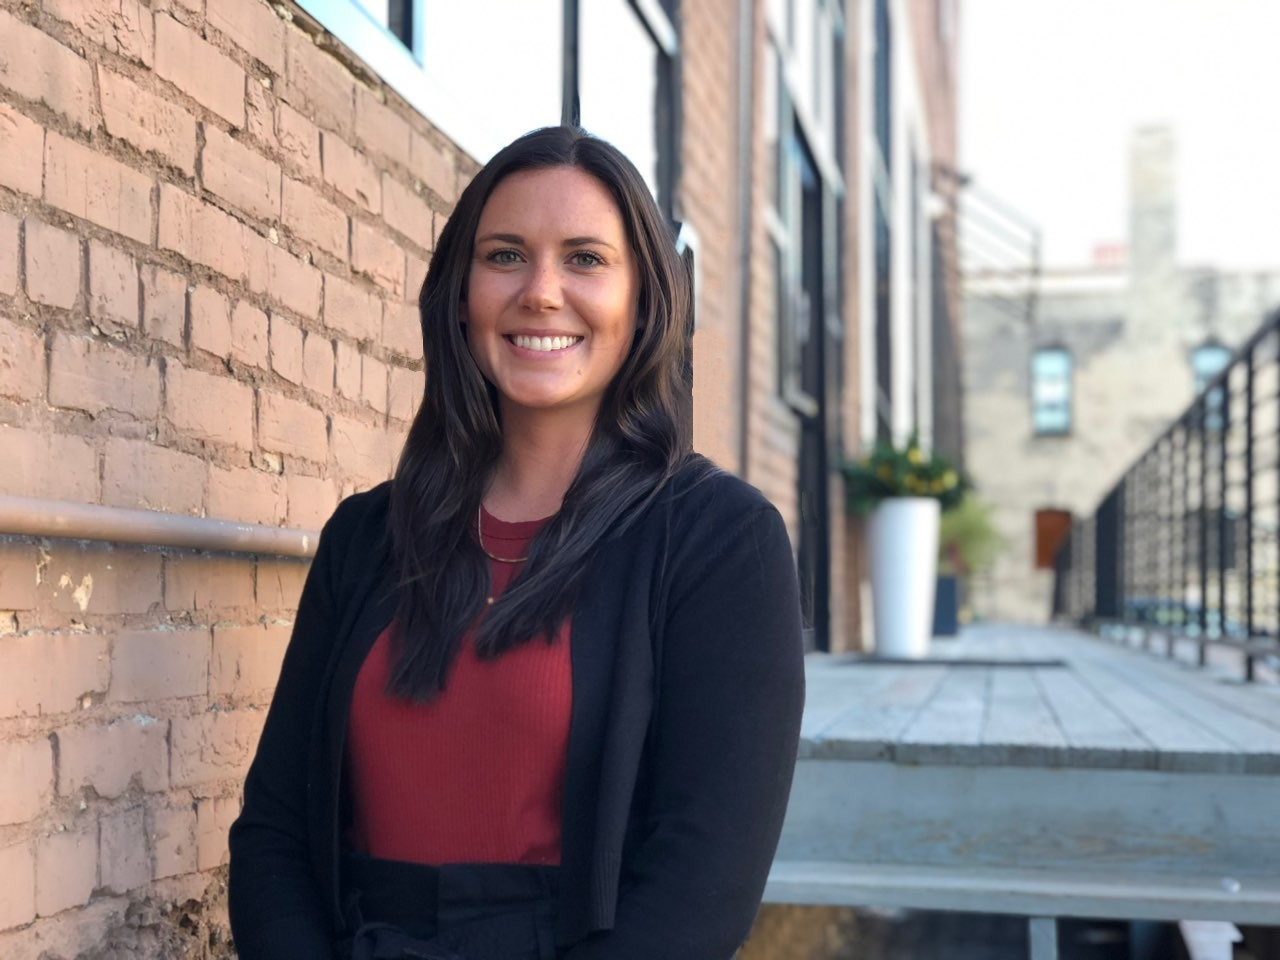 Tricia Hanson Joins Element as the Team's Marketing Associate